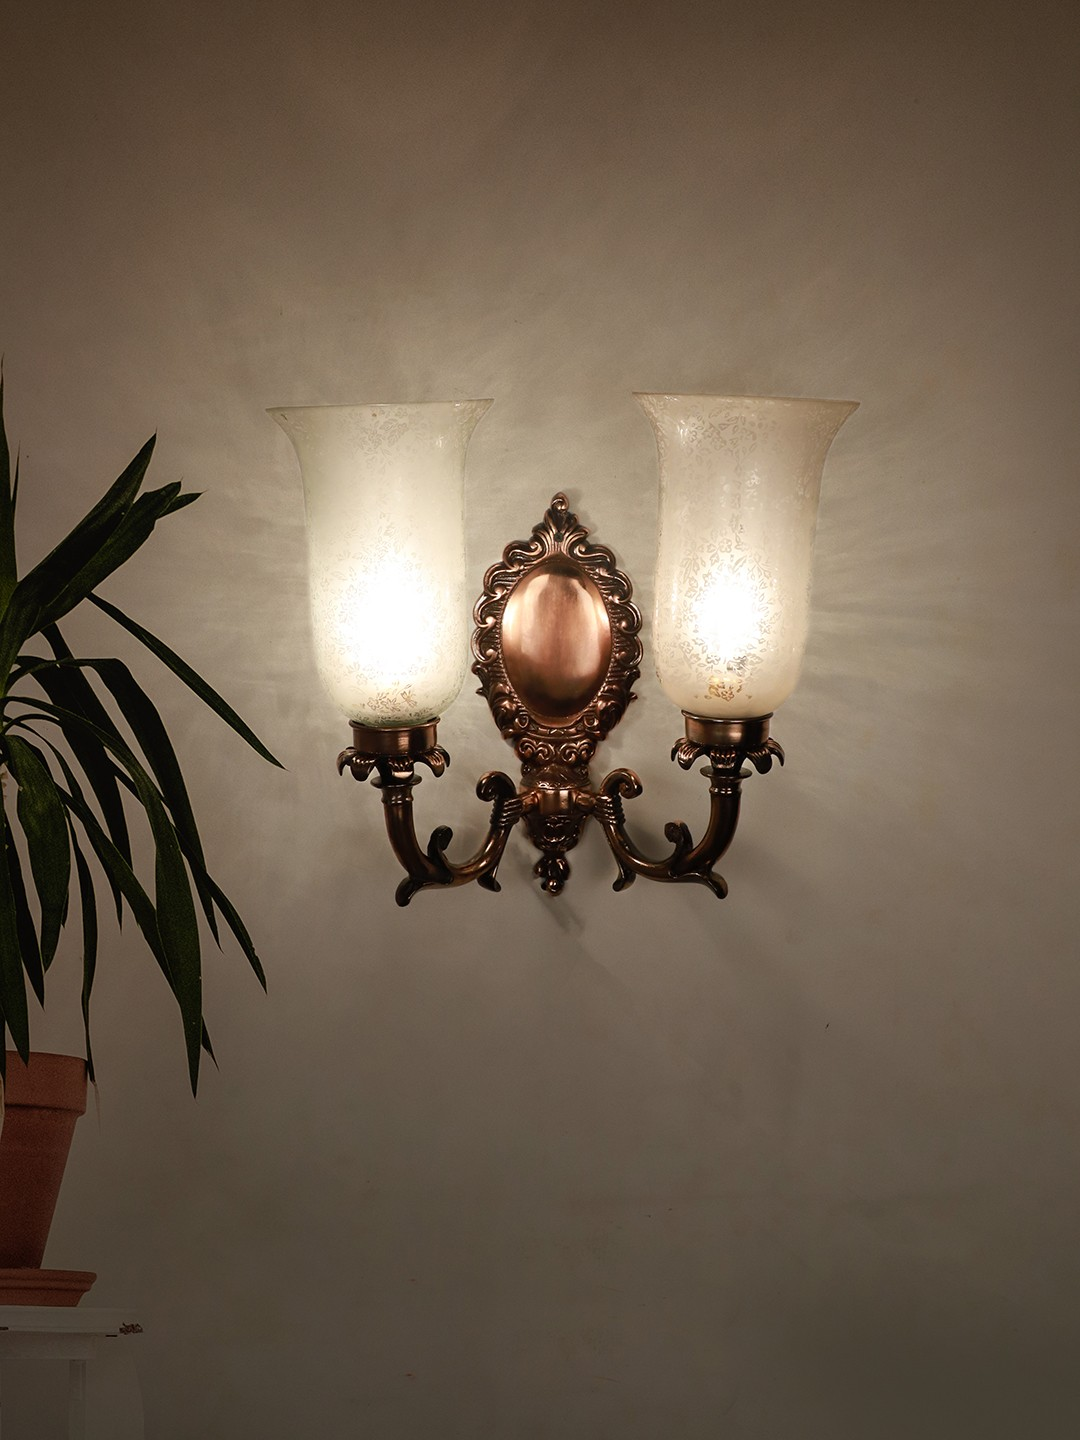 Antique Copper Finished Traditional 2 Light Wall Sconce with Etched Glass Shades